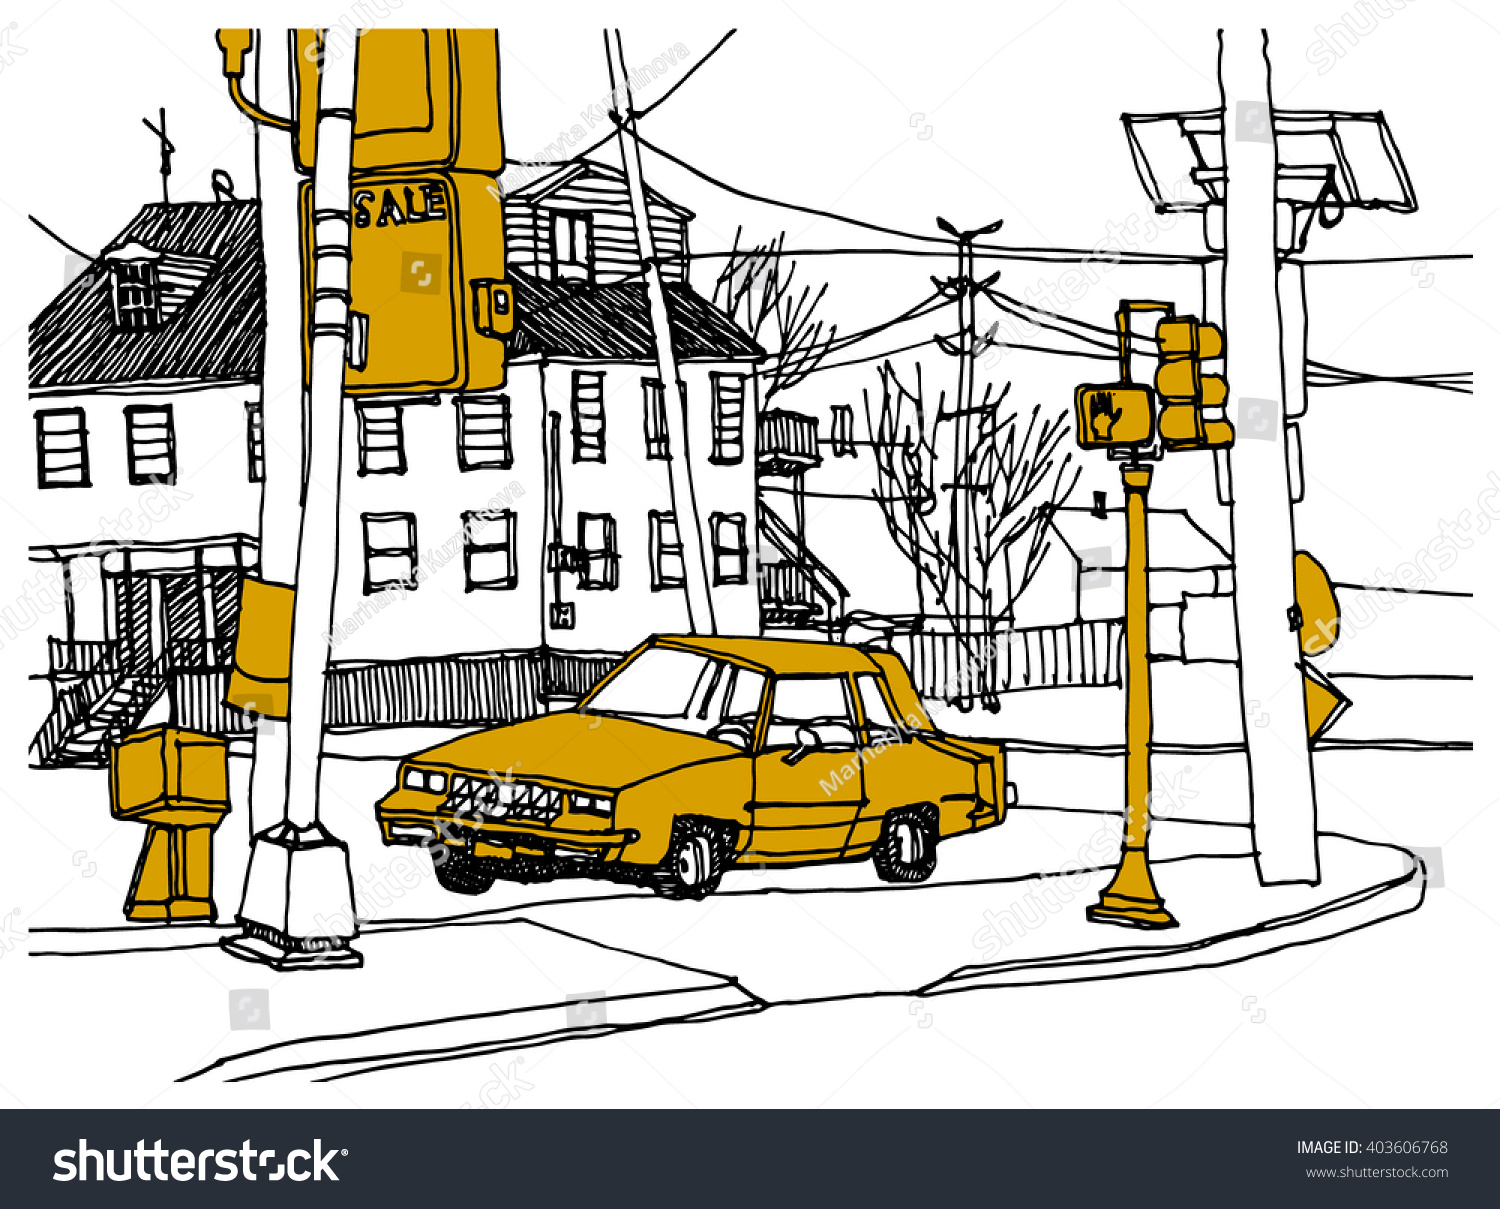 Scene Street Illustration Hand Drawn Ink Stock Vector 403606768 ...